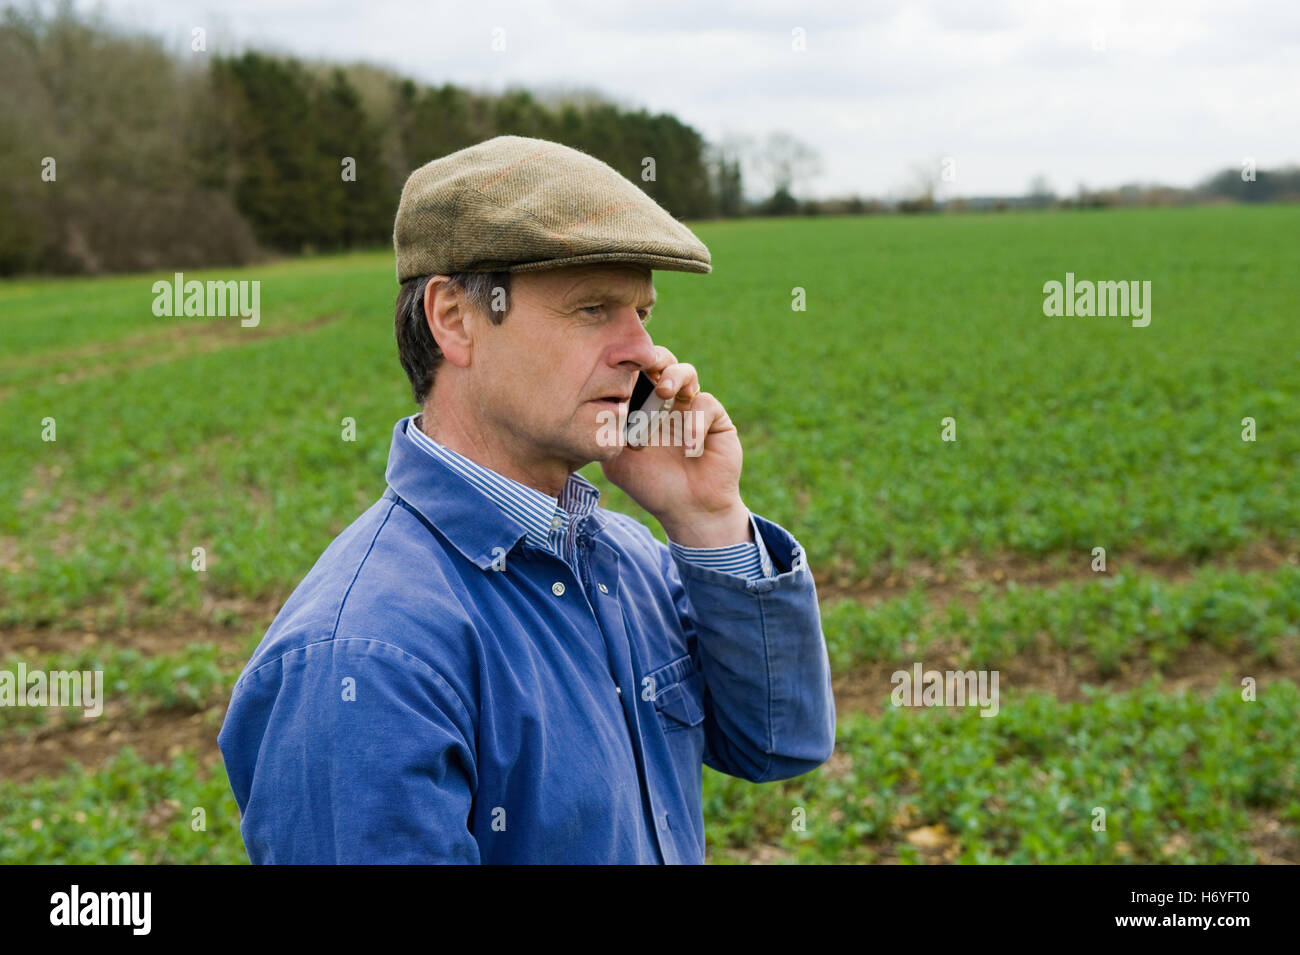 Farmer In Flat Cap Stock Photos   Farmer In Flat Cap Stock Images ... da5a44475490